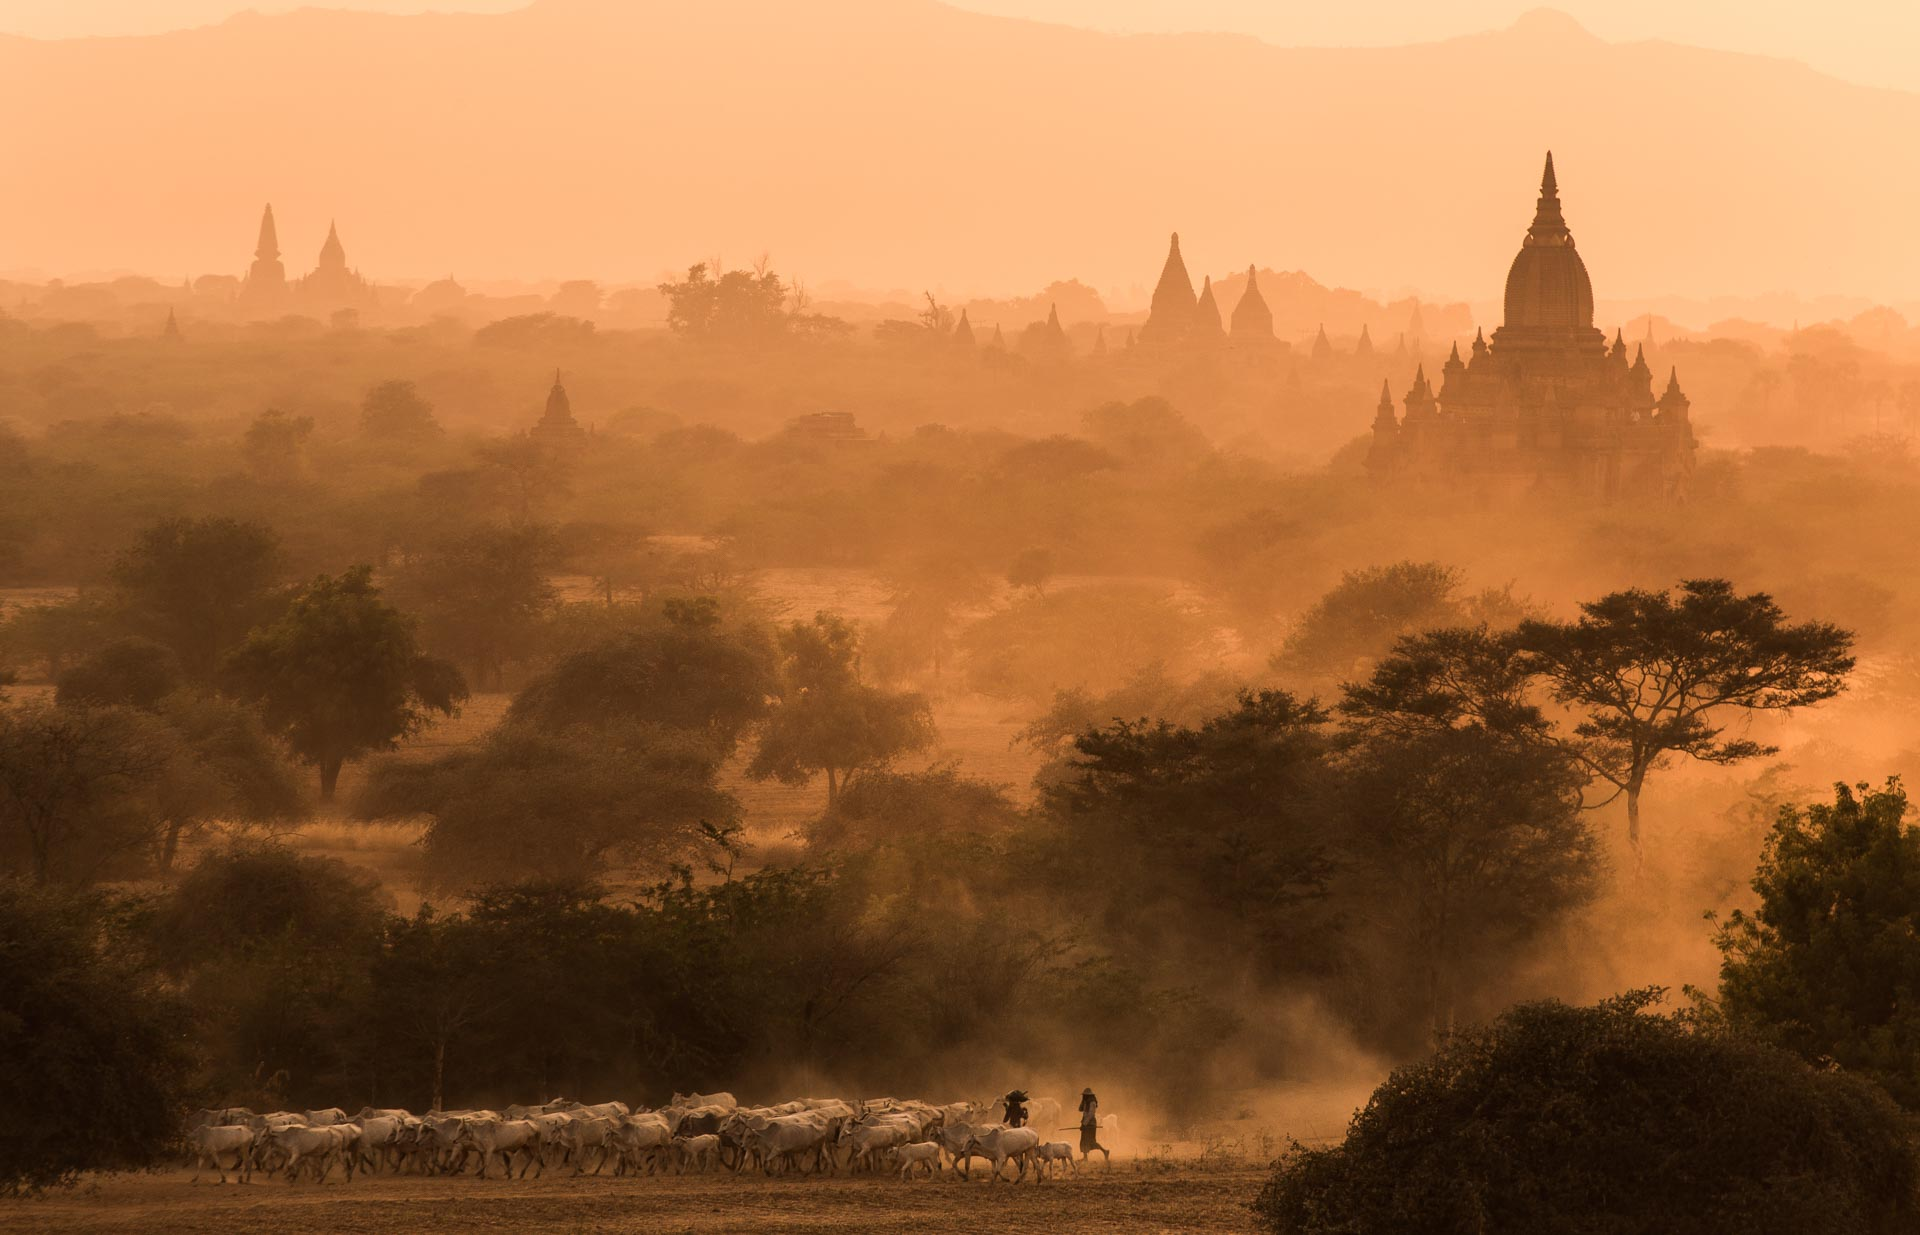 Cattle herders at sunset in Bagan. Myanmar